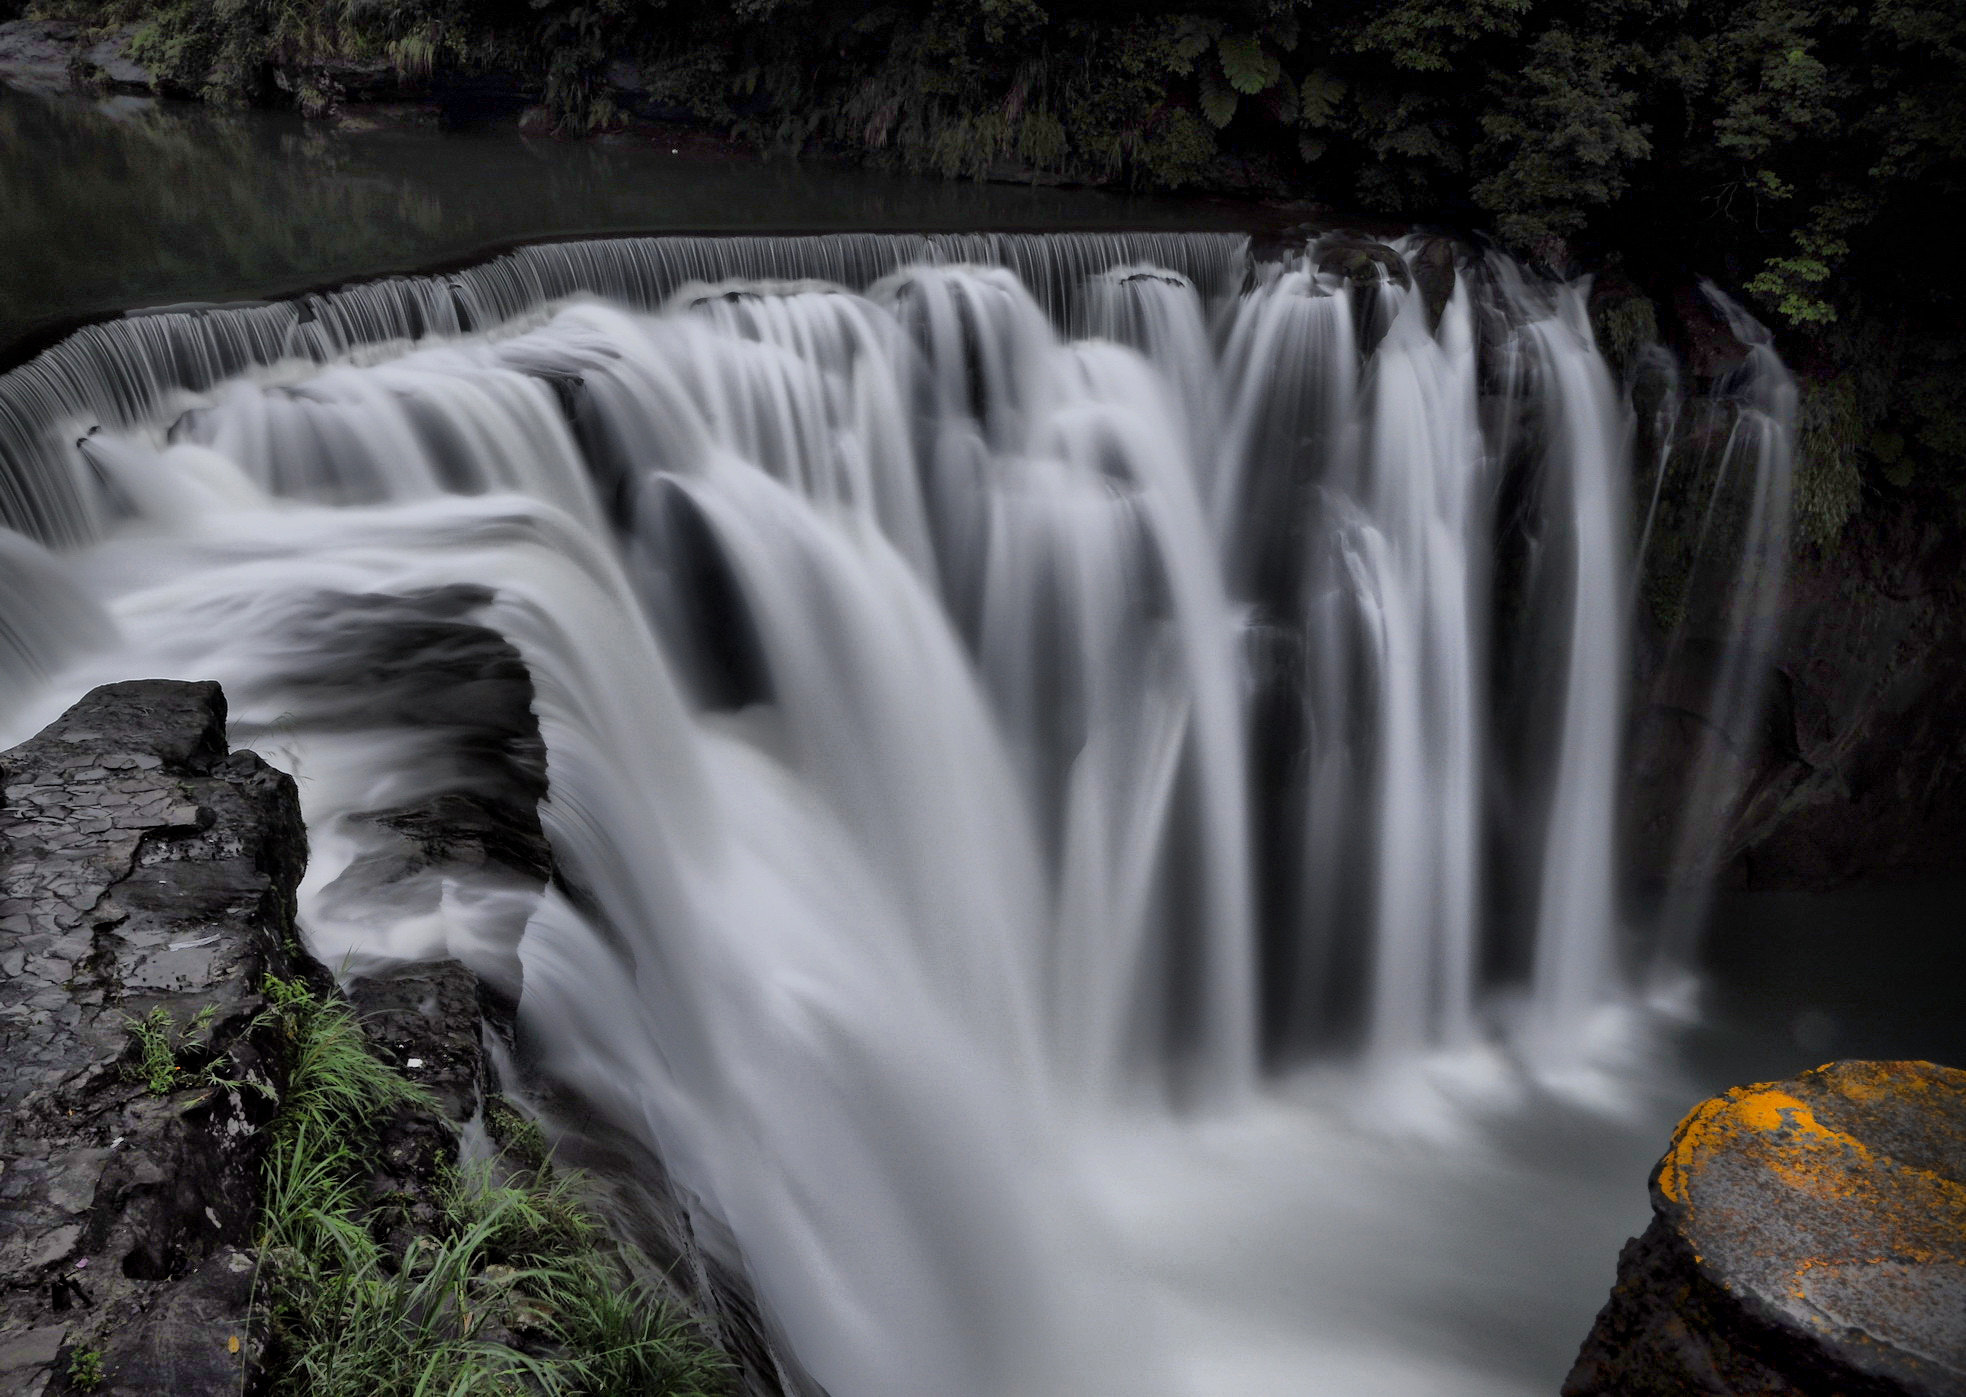 Photograph waterfall cup by Konstantin Alexandrov on 500px